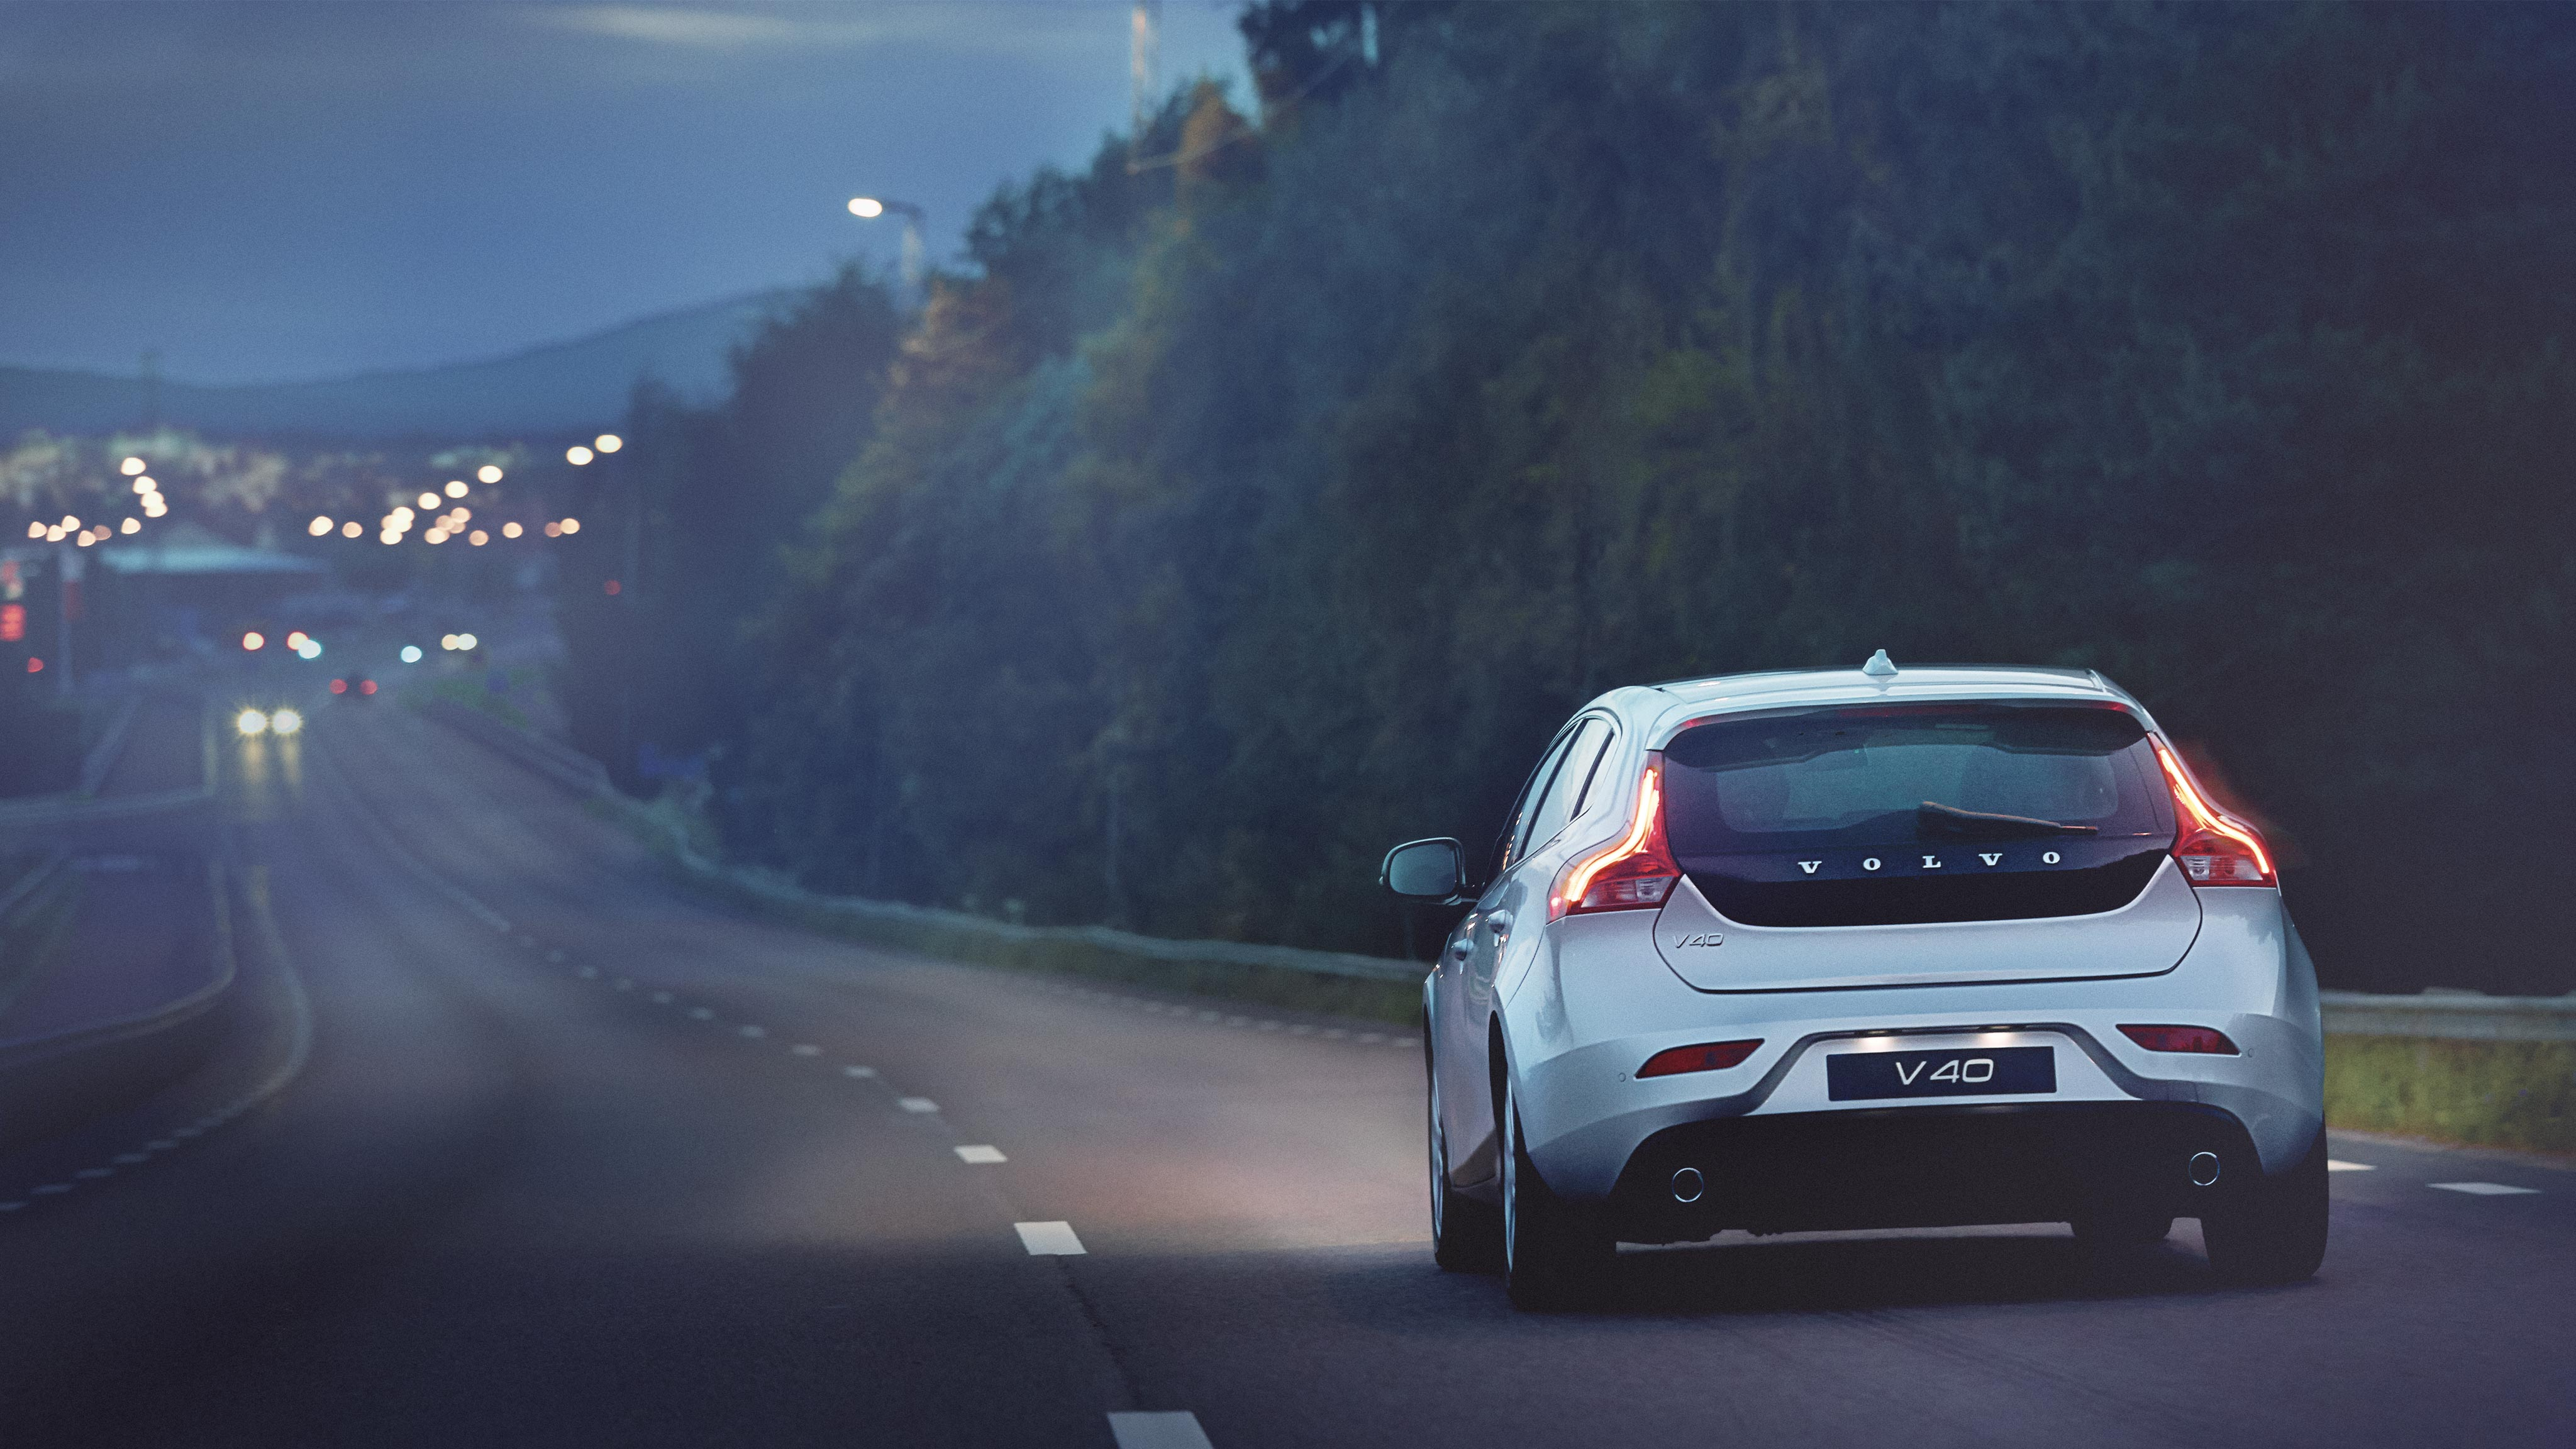 Volvo V40 Pictures and Gallery